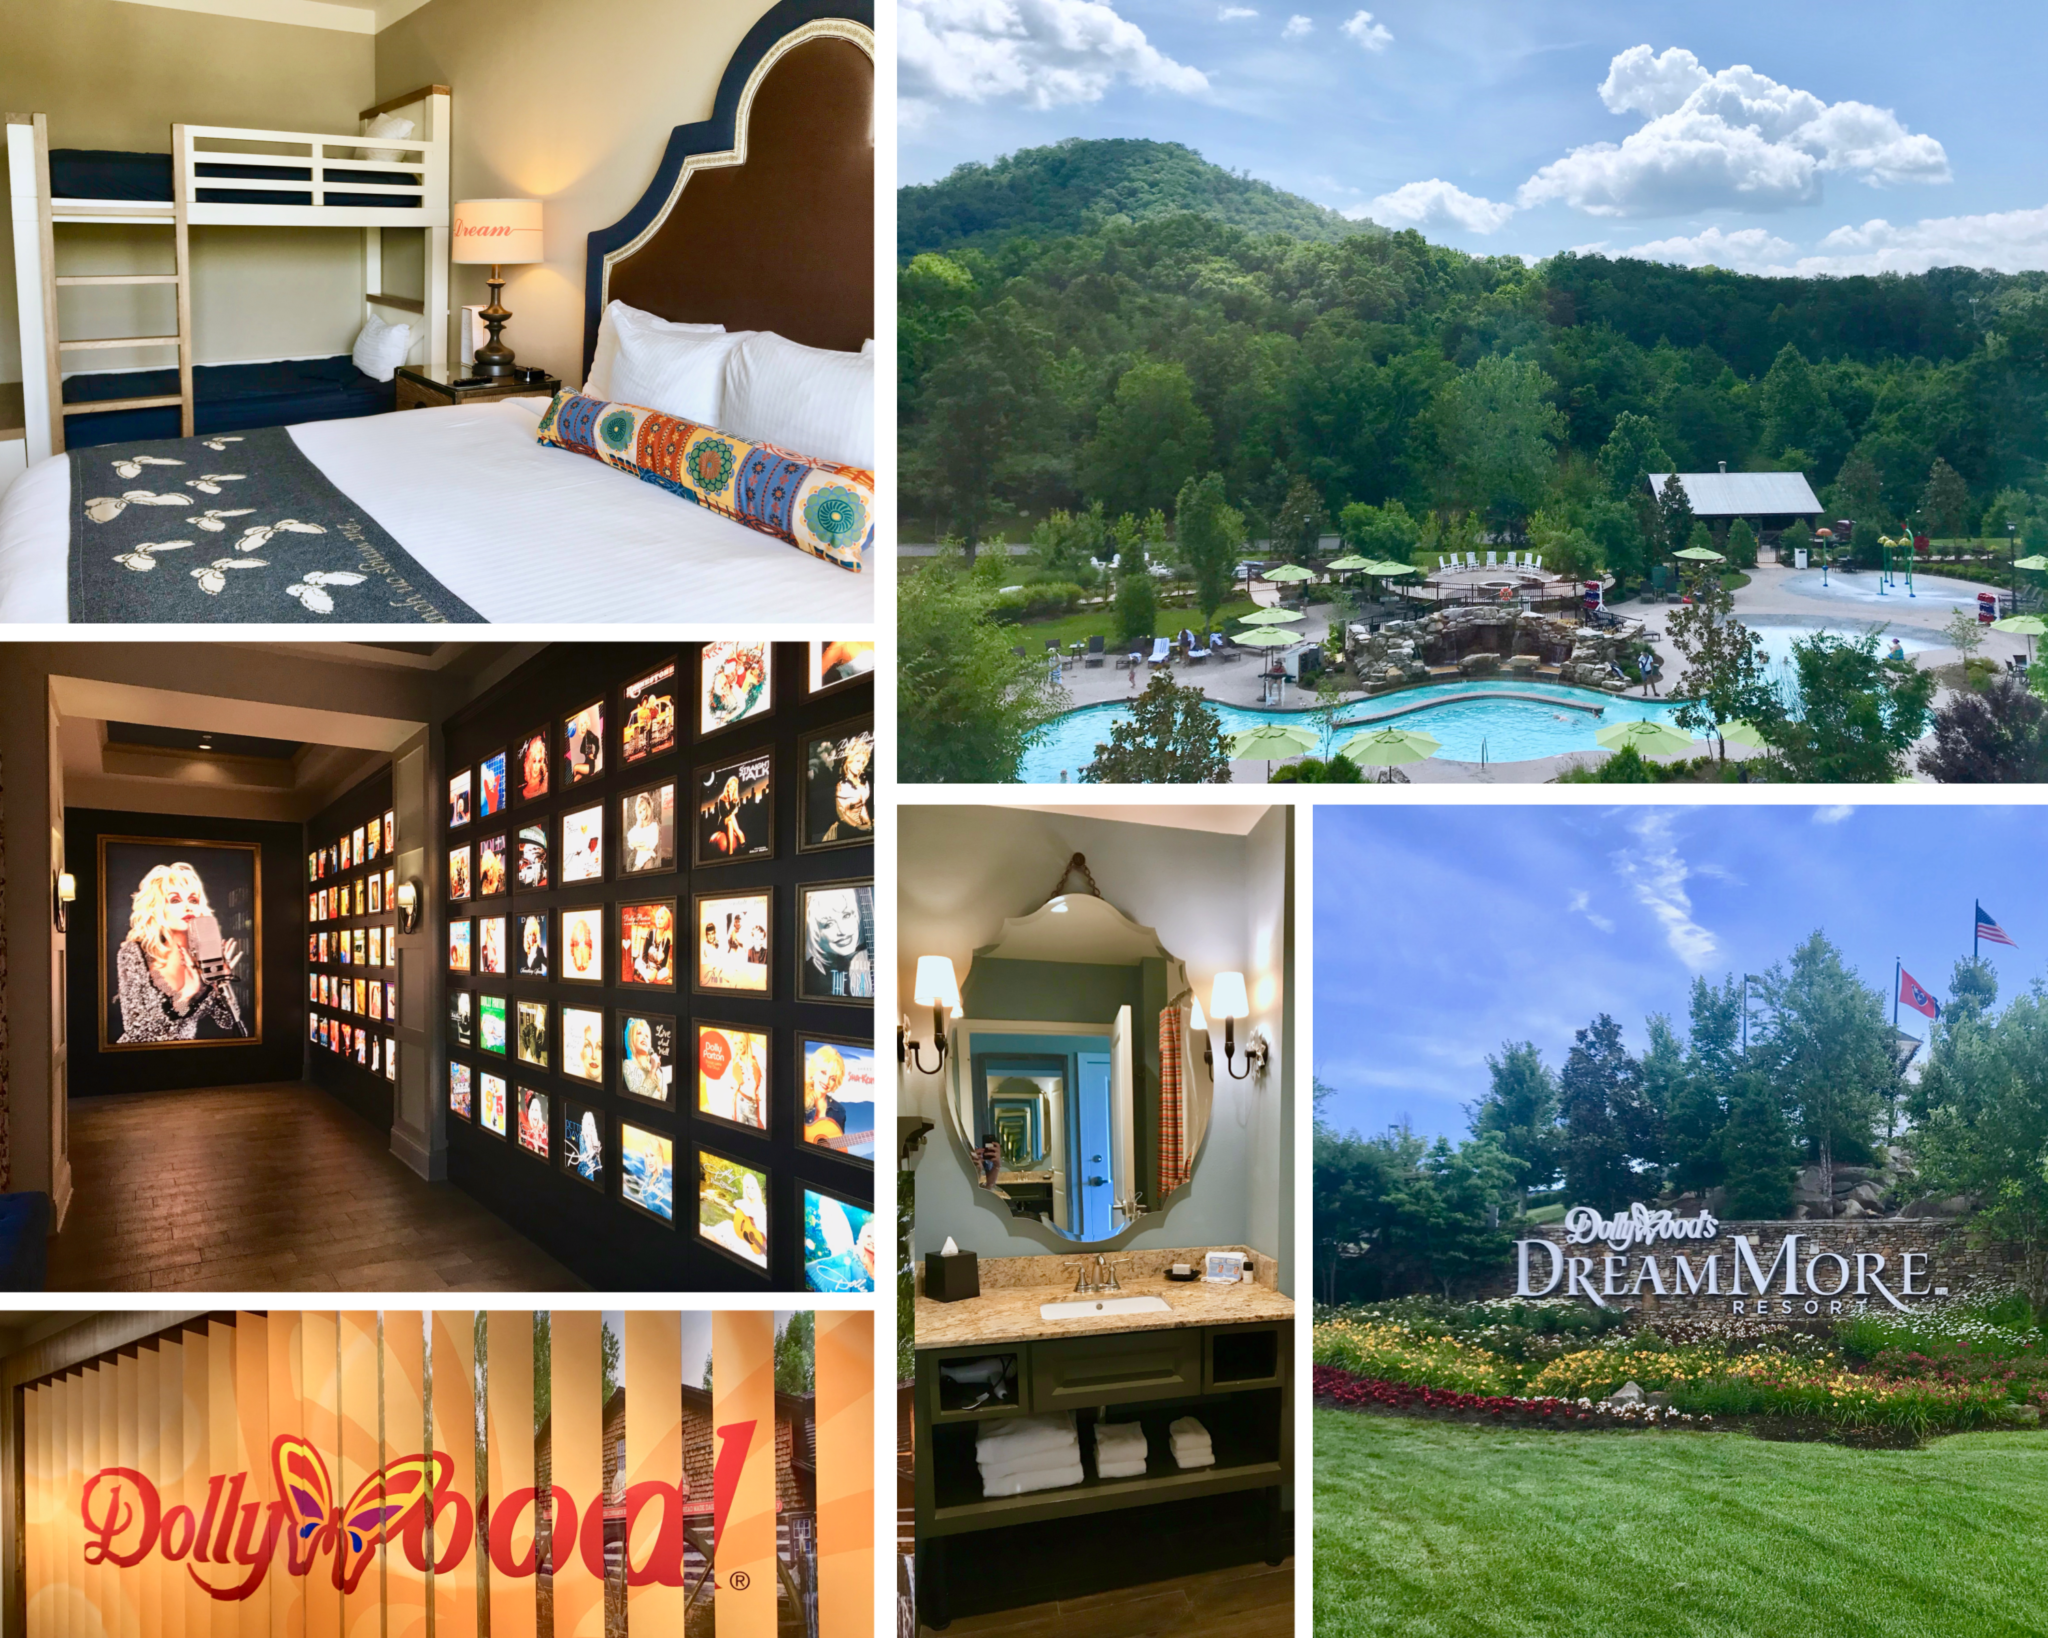 A Foodie's Guide To Dollywood Family Amusement Park - Slice